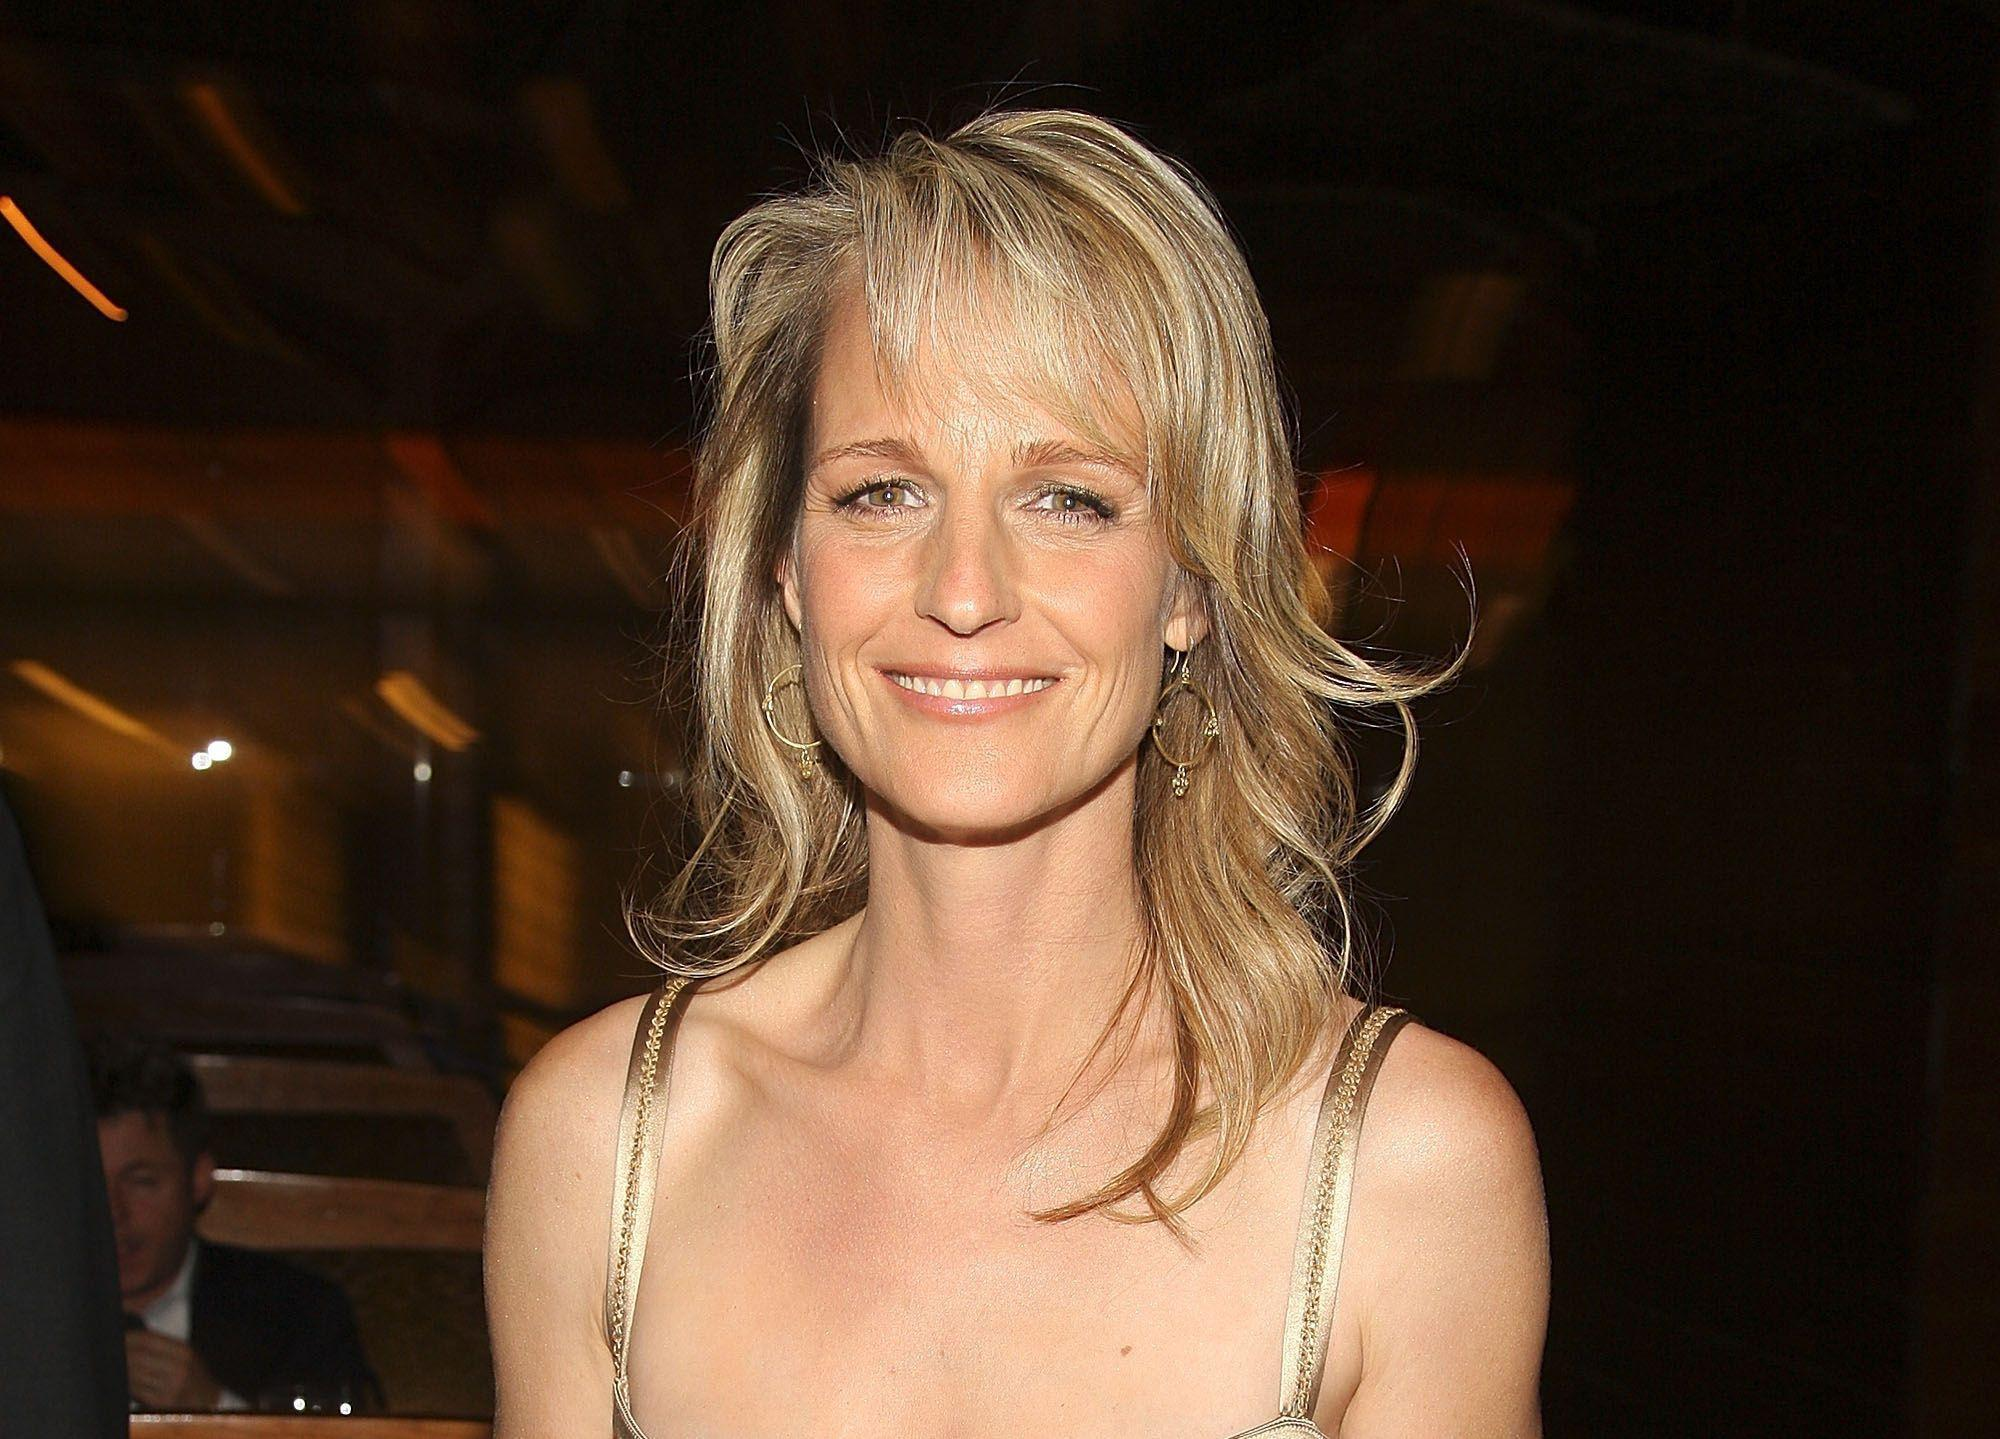 Helen Hunt Free HD Wallpapers Image Backgrounds